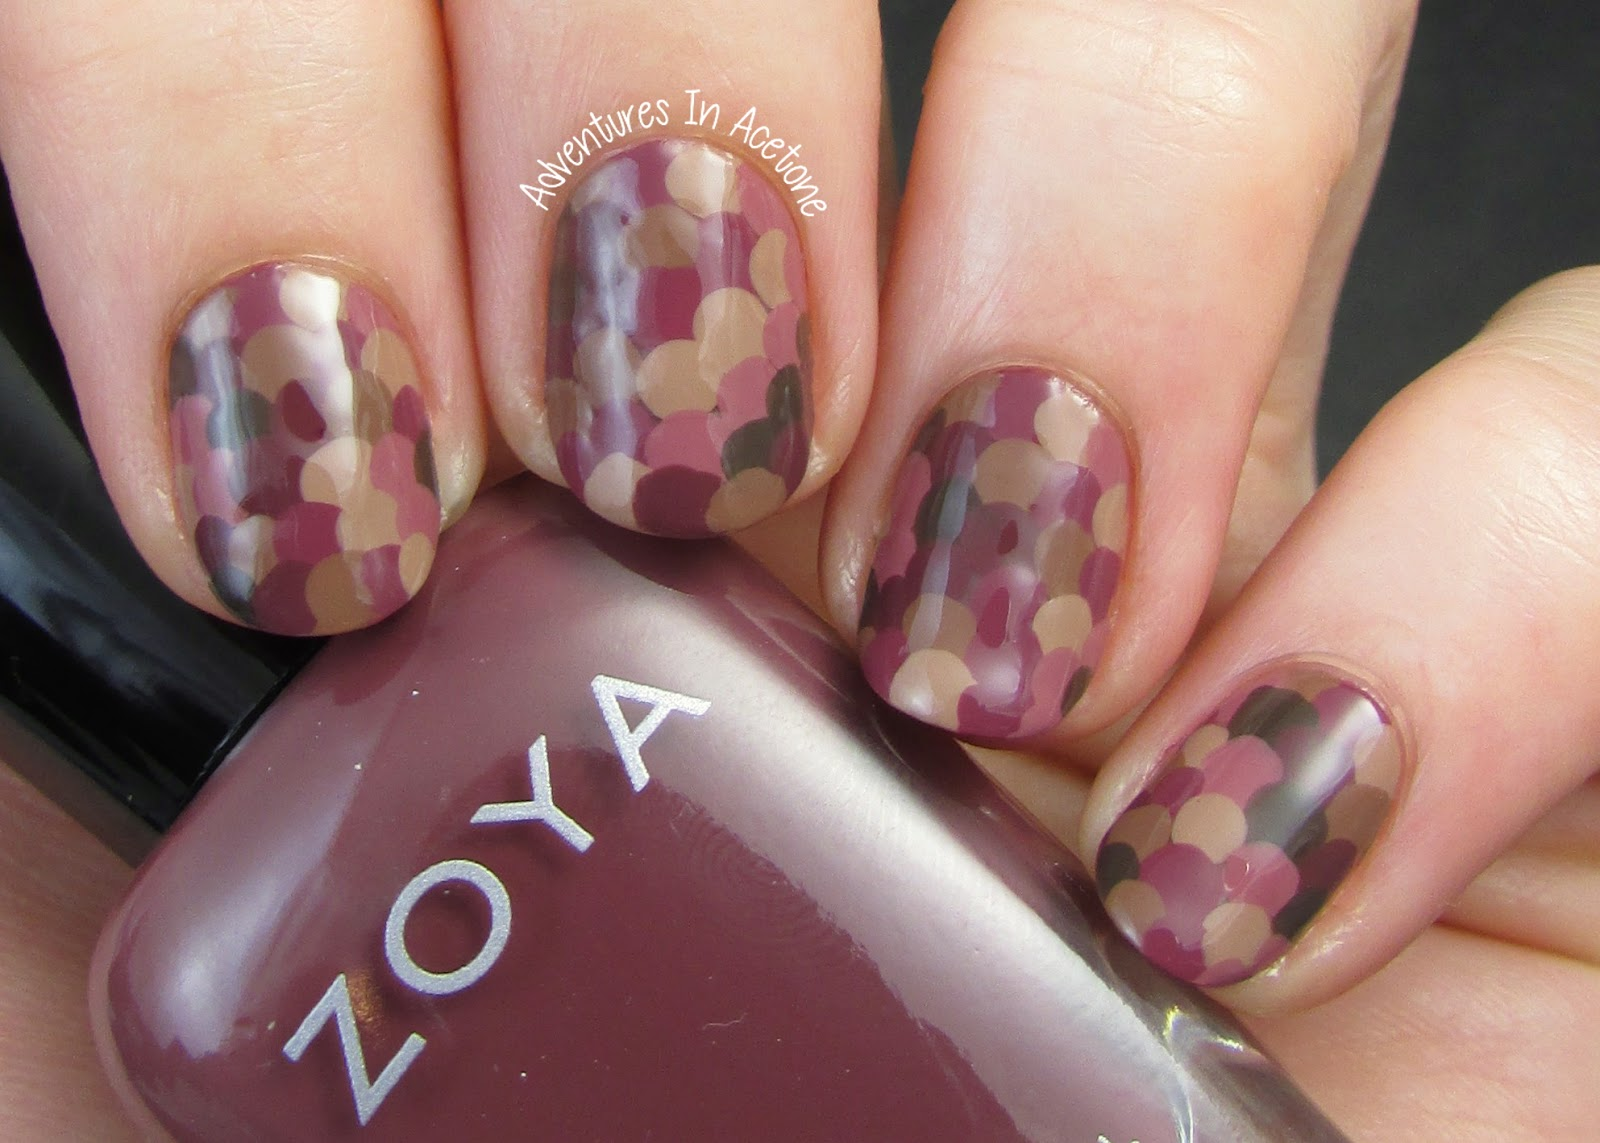 Dot Nail Art with Zoya Naturel Deux! - Adventures In Acetone